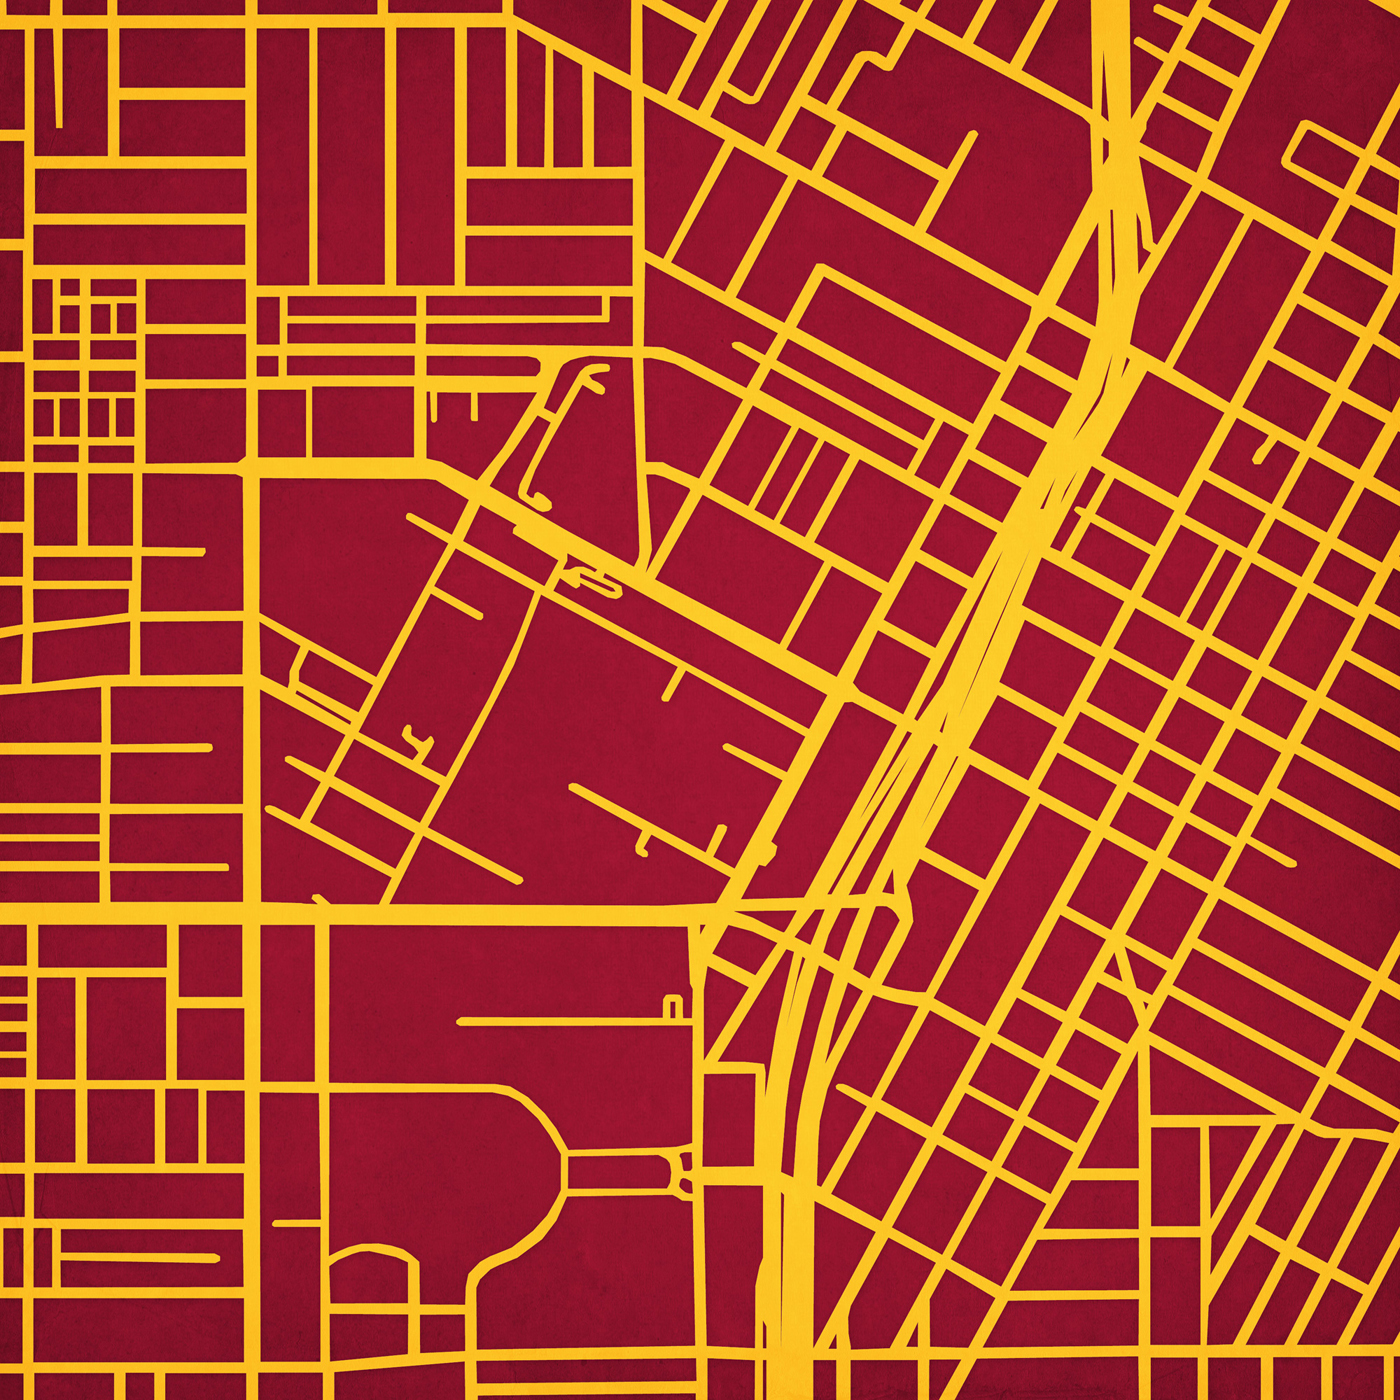 Usc Campus Map Printable Pictures To Pin On Pinterest PinsDaddy - Map of usc columbia